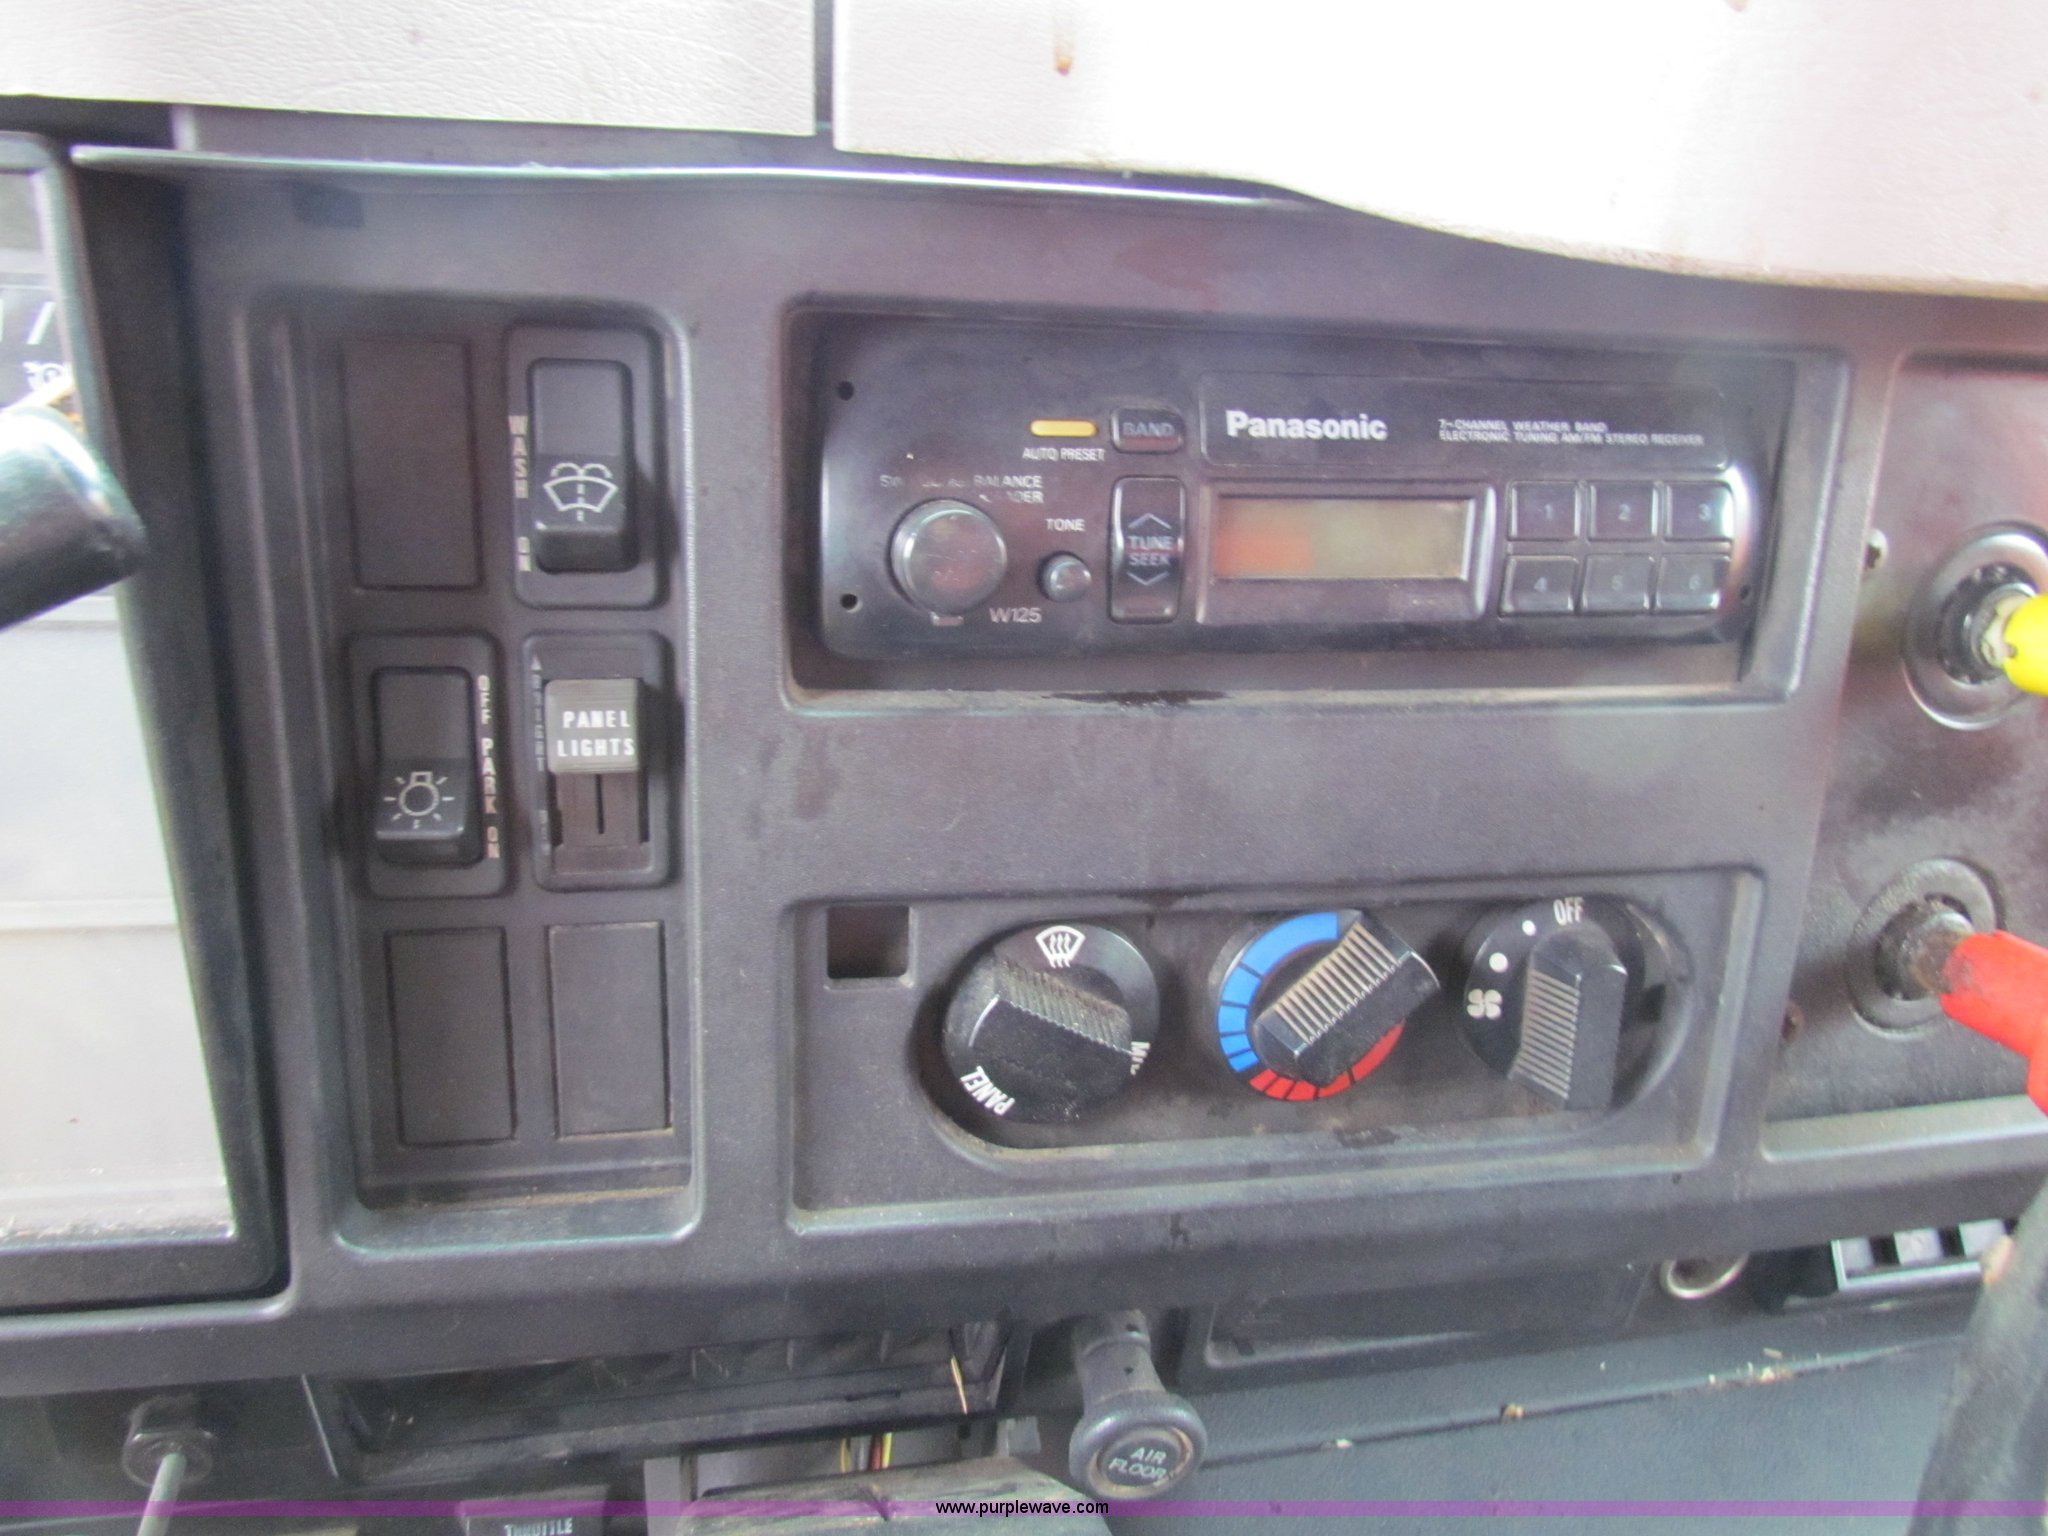 1997 International 4900 Tandem Axle Dump Truck Item B7132 Car Radio Wiring Panasonic W125 Full Size In New Window